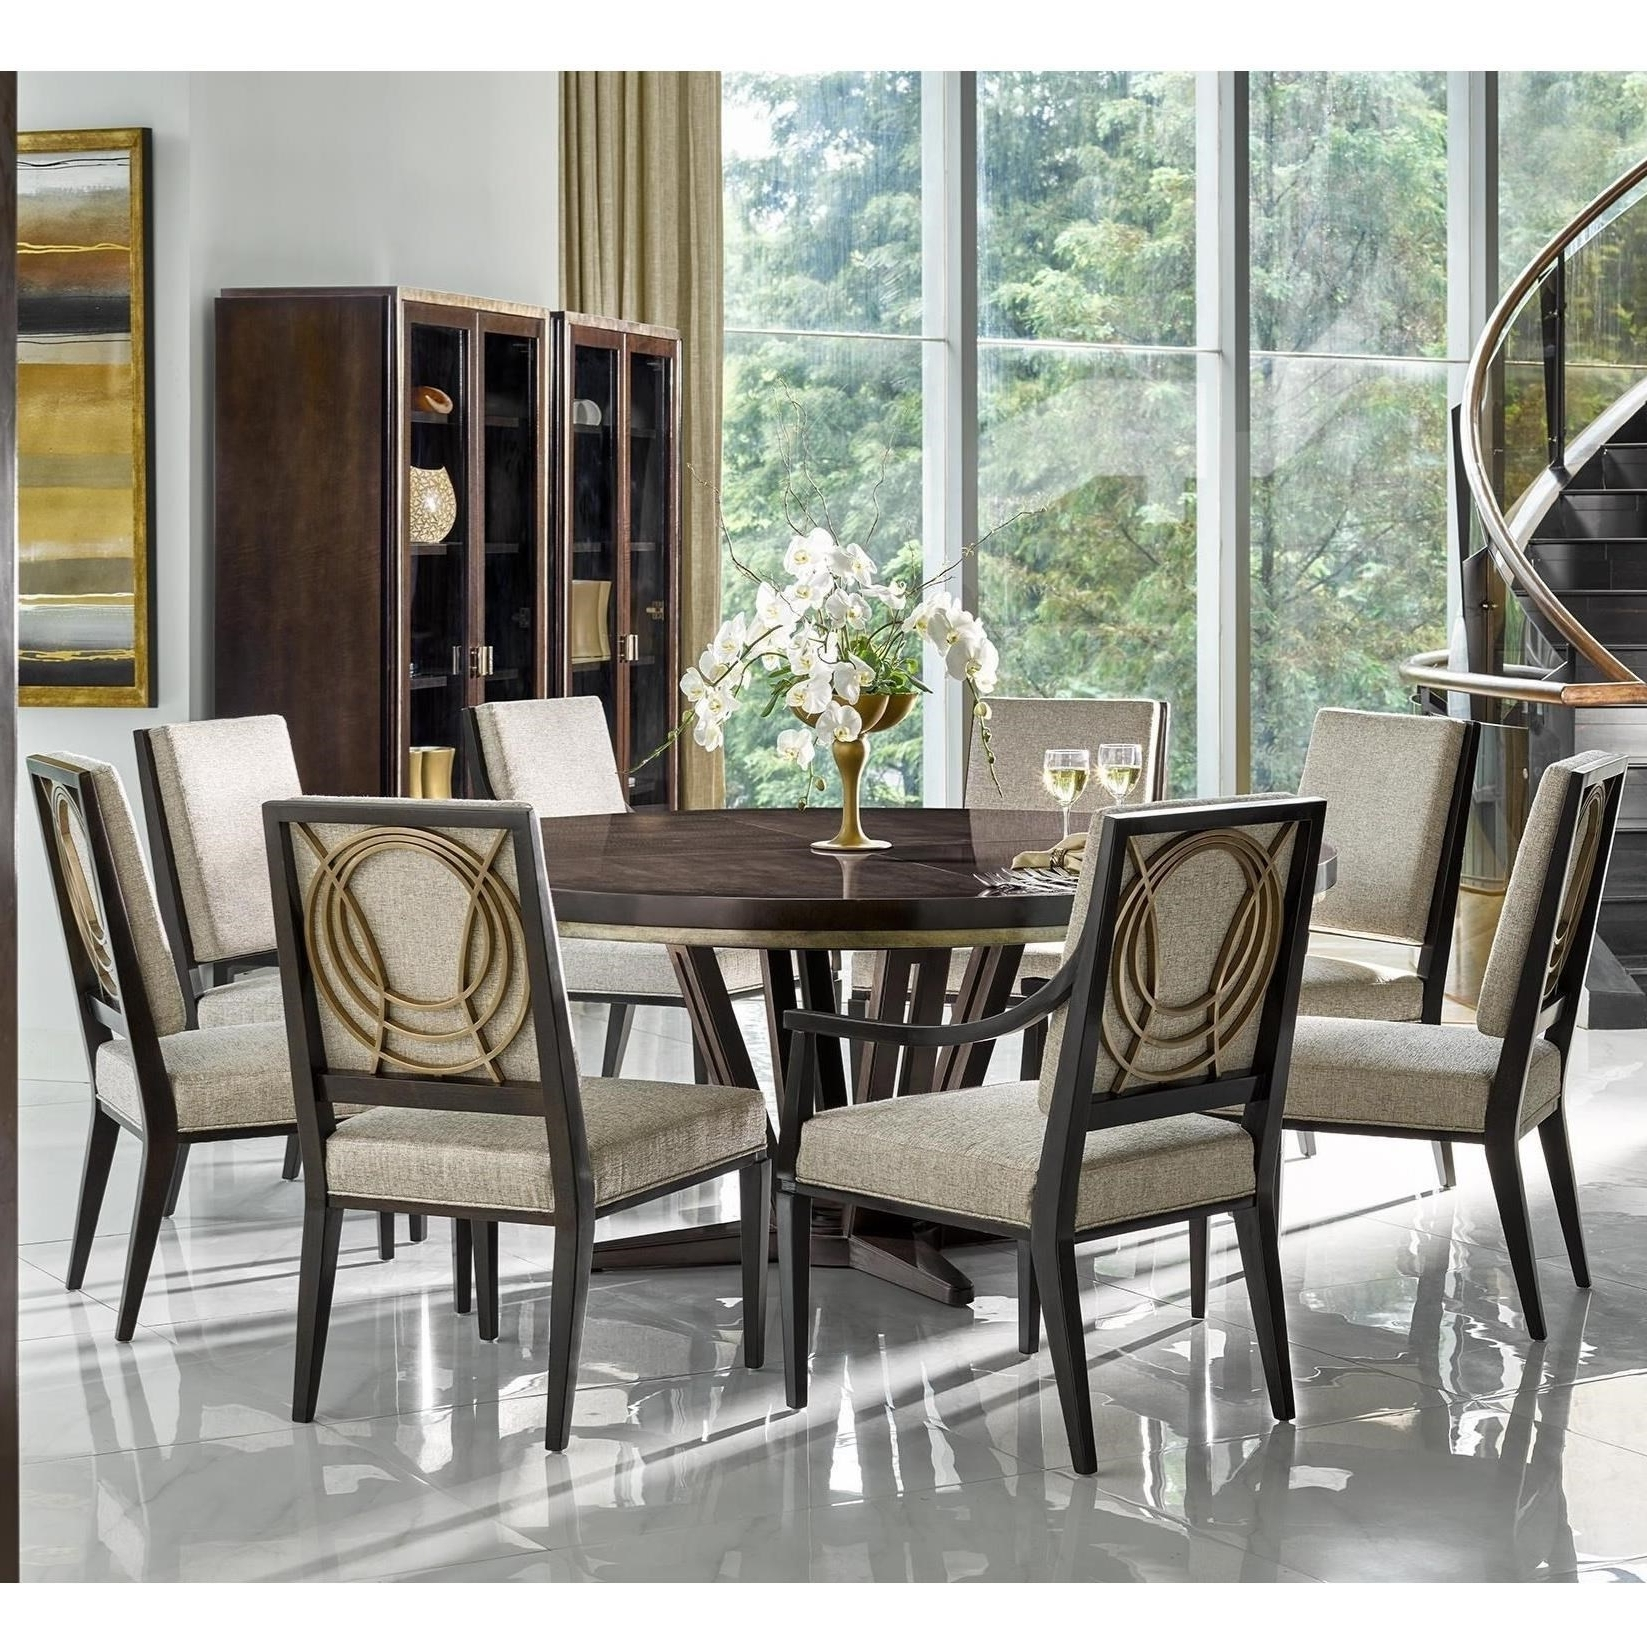 Cheery Caira Piece Extension Set Back Chairs Caira Piece Extension For Popular Caira 9 Piece Extension Dining Sets (View 14 of 25)